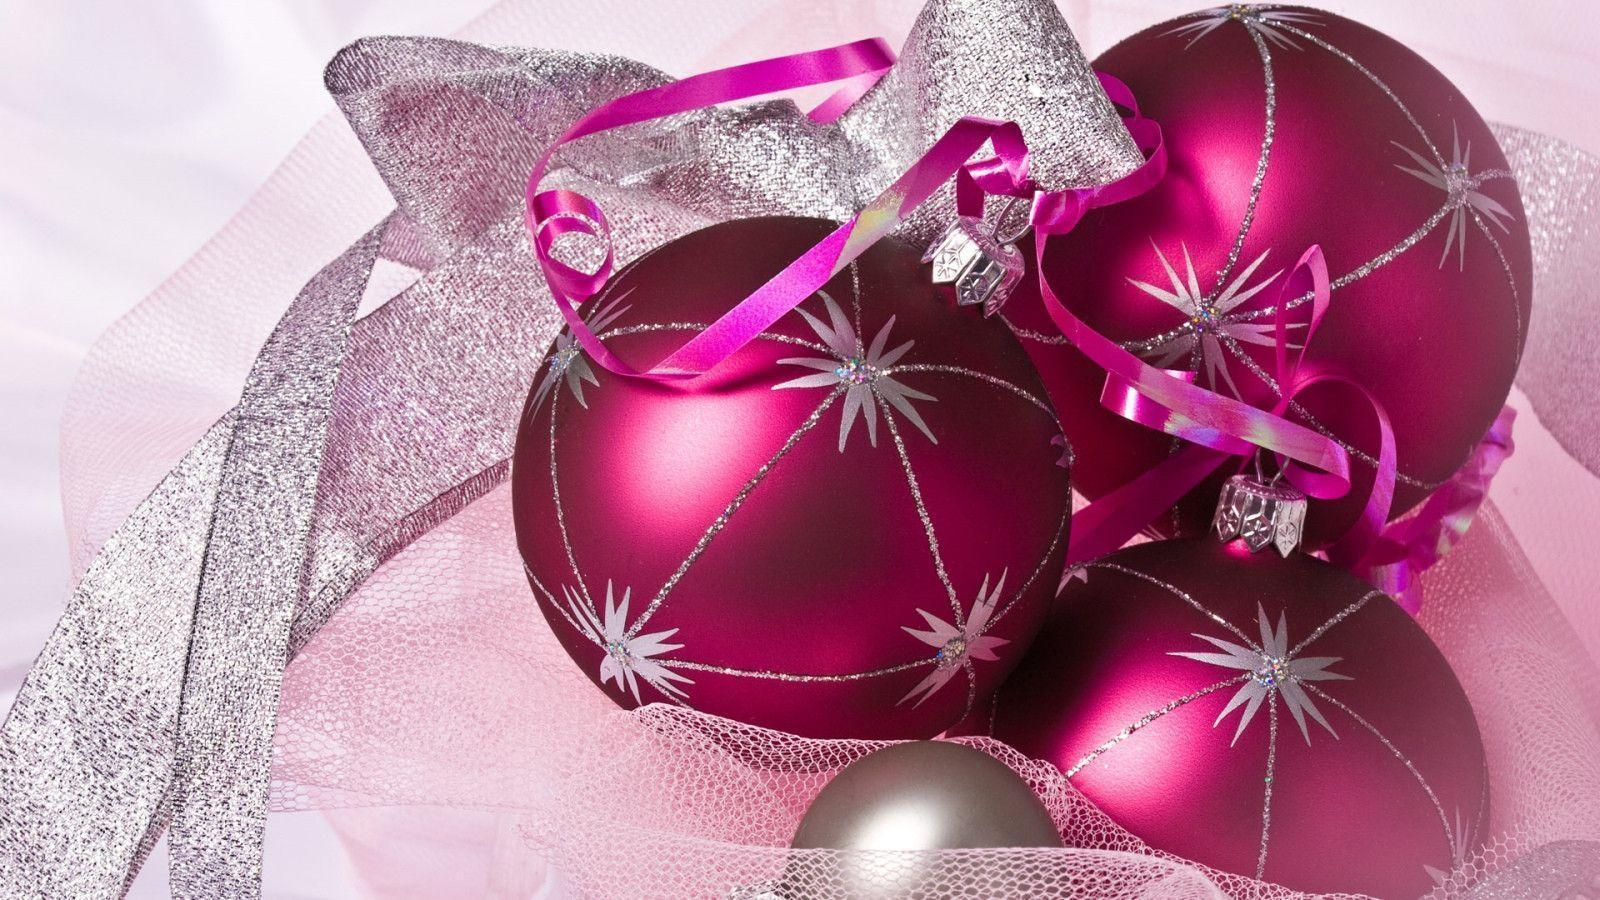 Xmas Stuff For > Christmas Ornaments Wallpaper